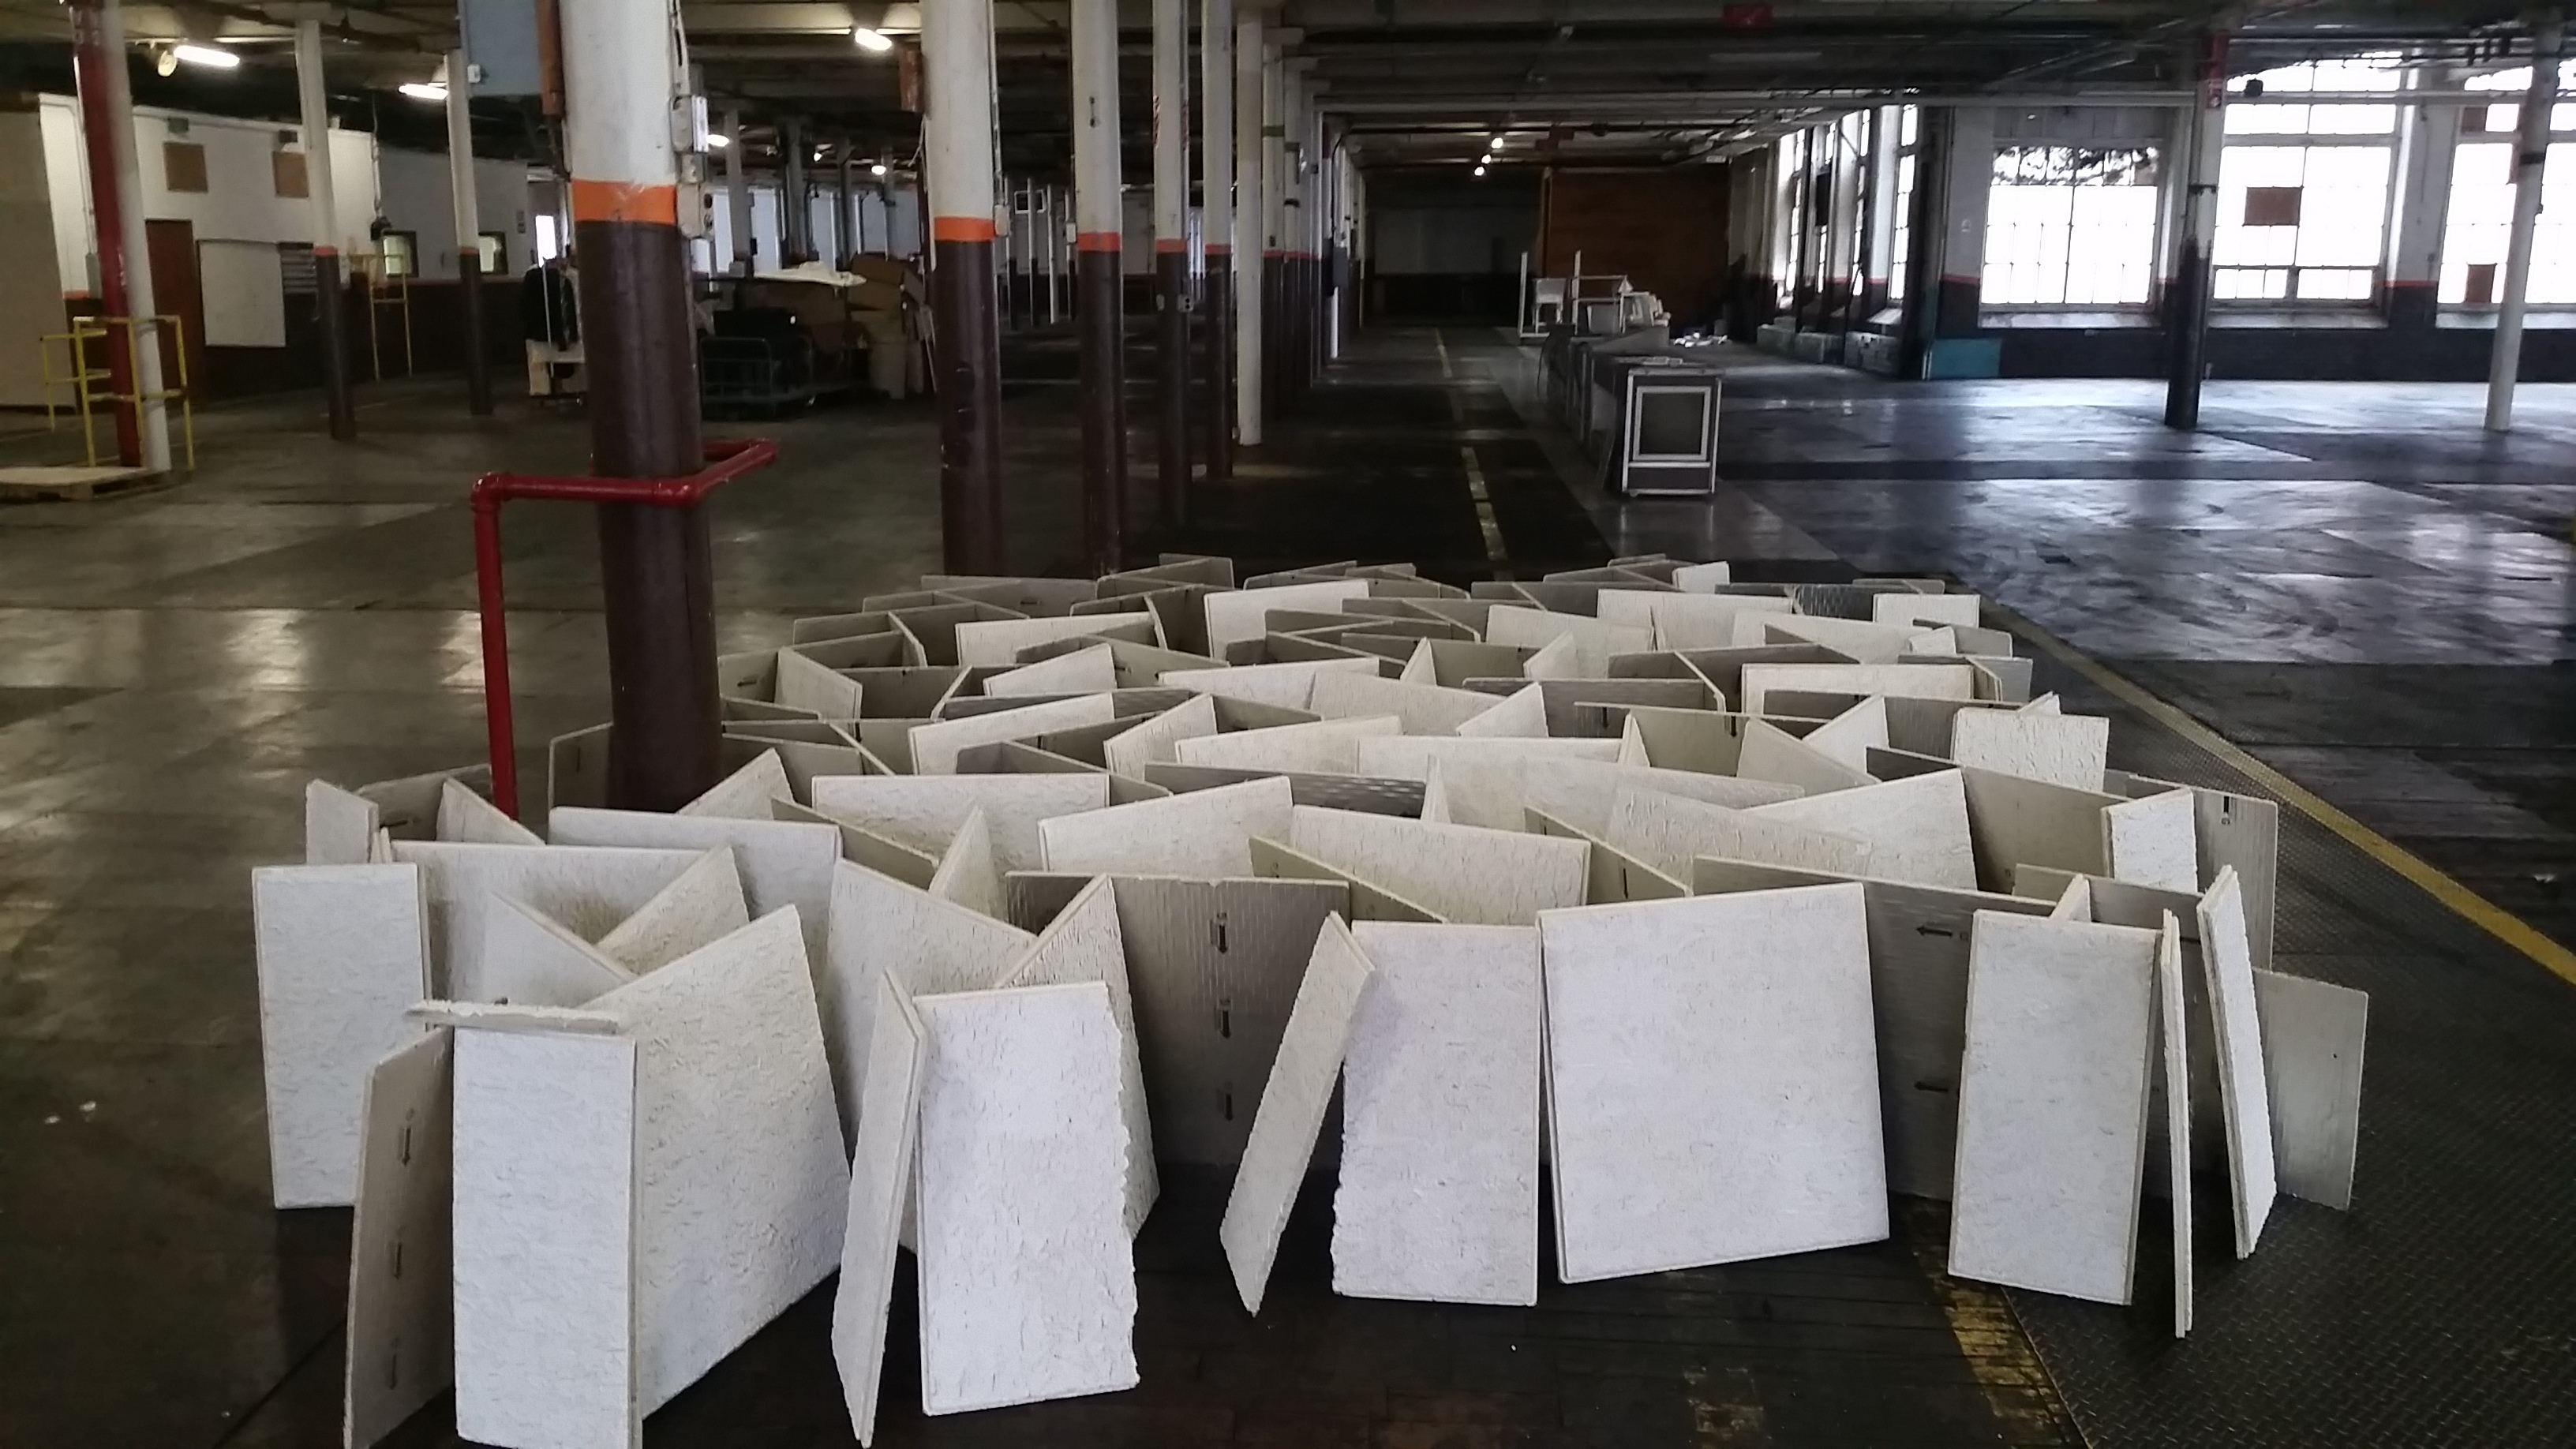 Took The Ceiling Tiles Into The Factory For A Thorough Cleaning And Painting. There They Are Drying.